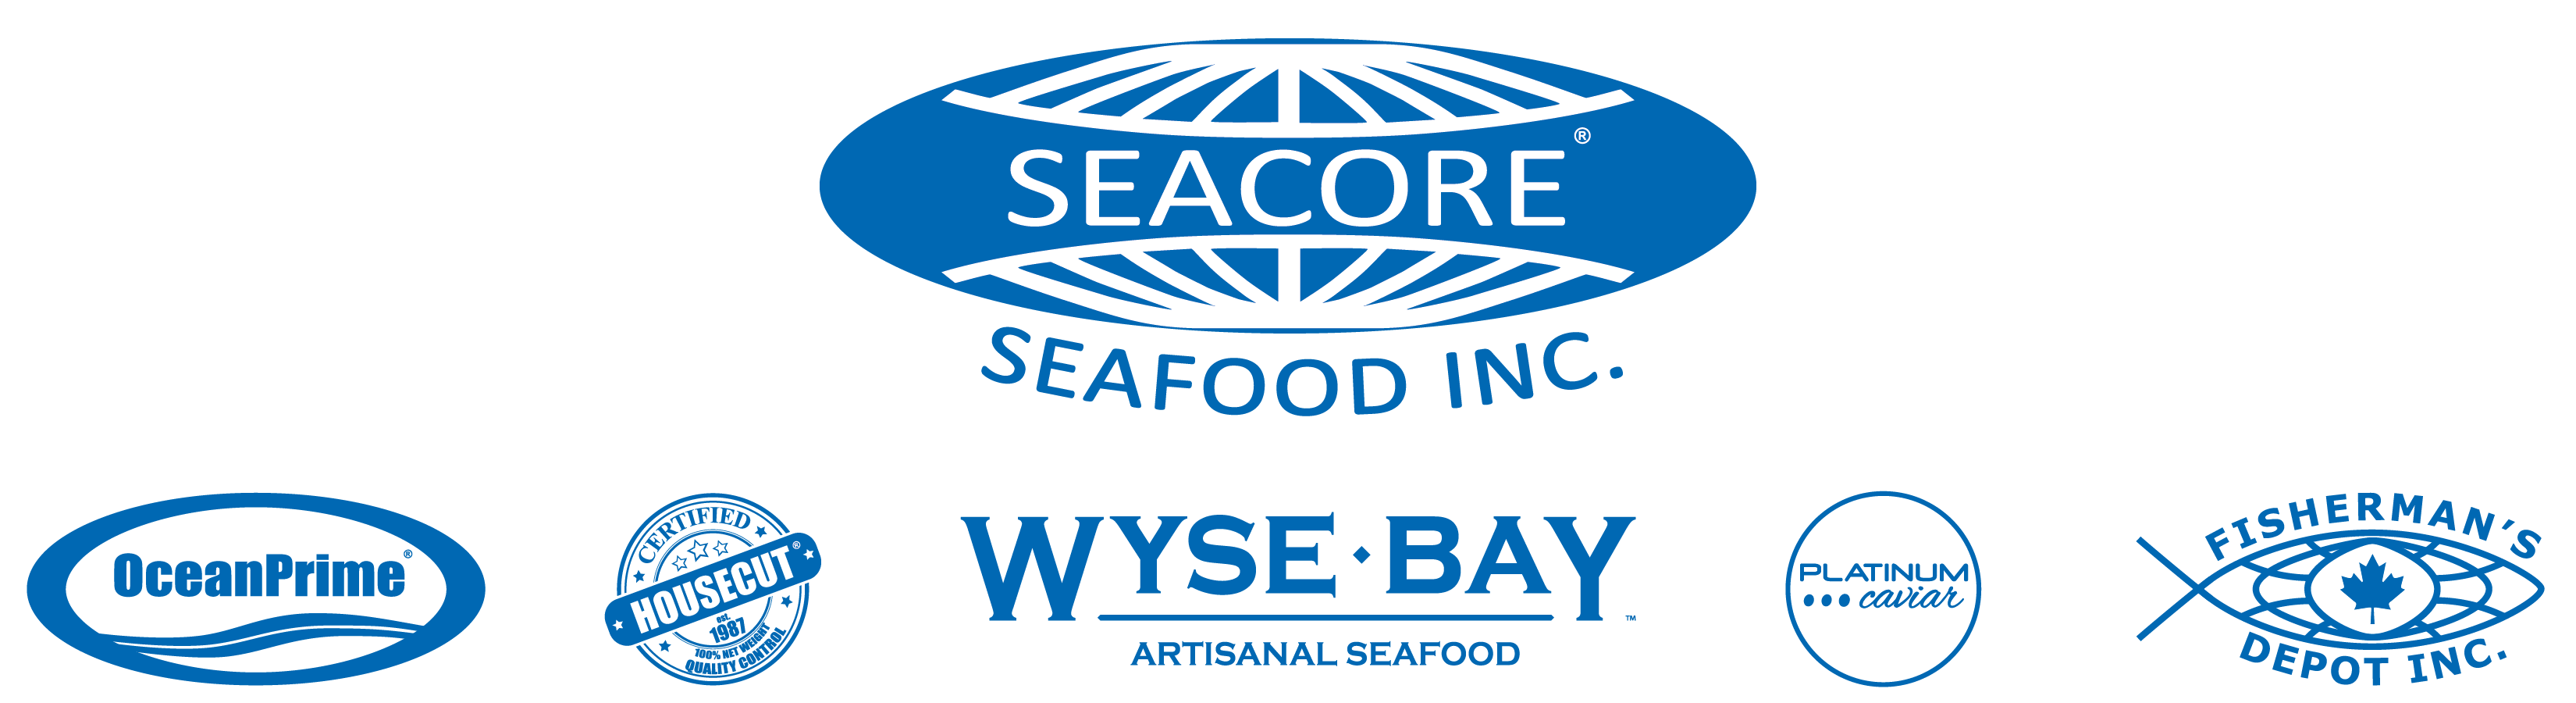 Seacore Seafood Brands